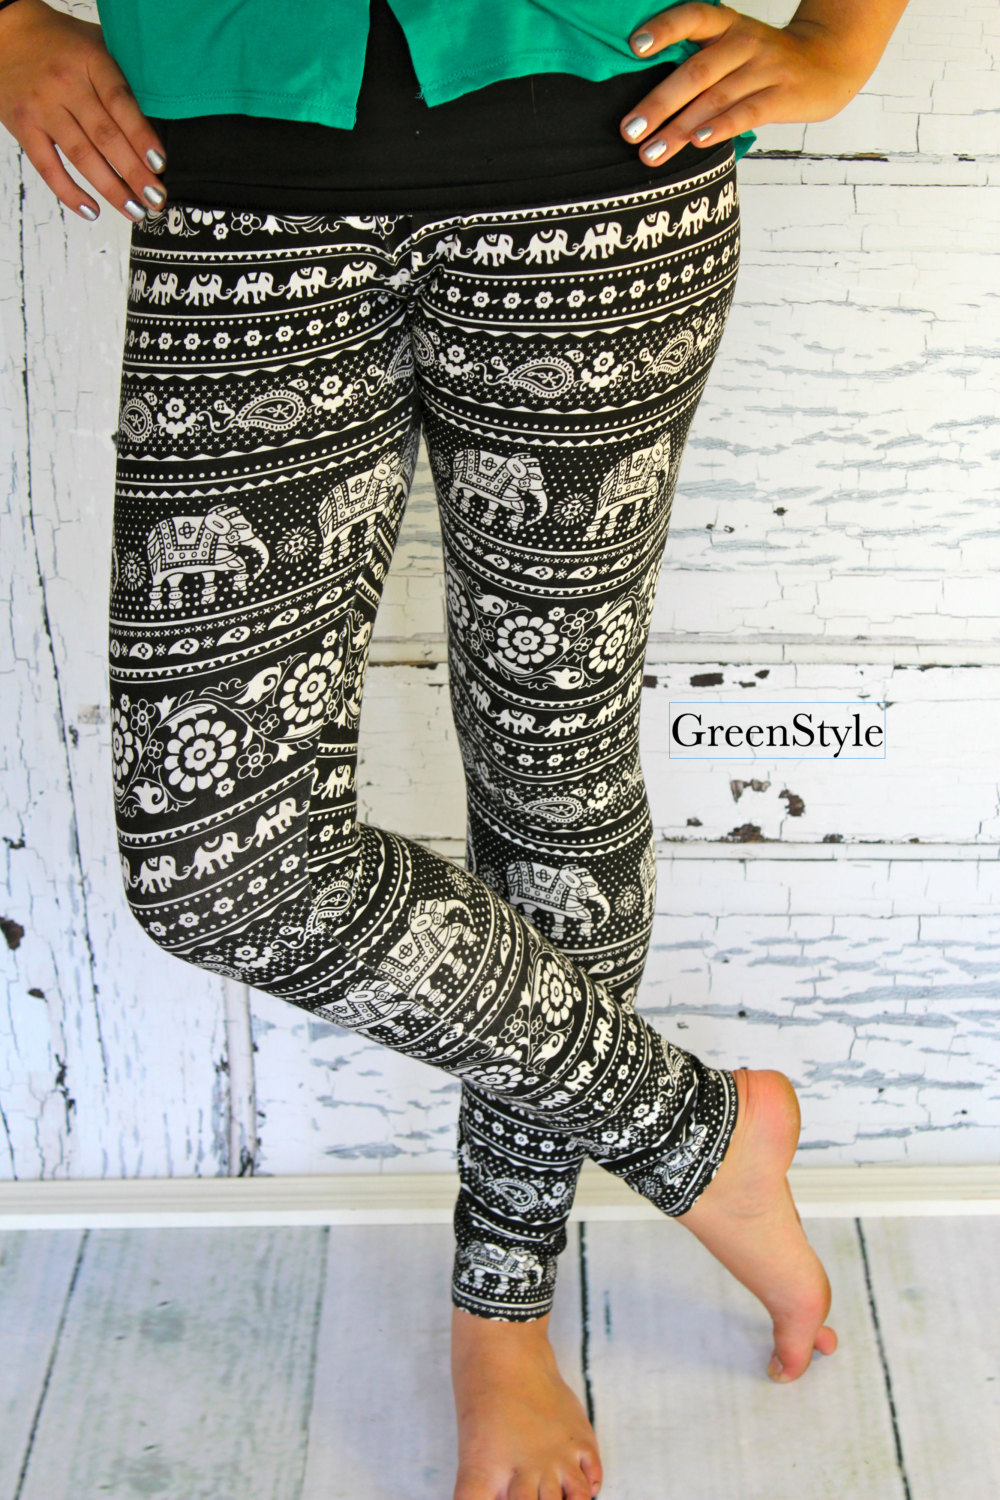 Black and Ivory Asian / Indian Tribal Elephant Leggings in Teen to Women's sizes from GreenStyle